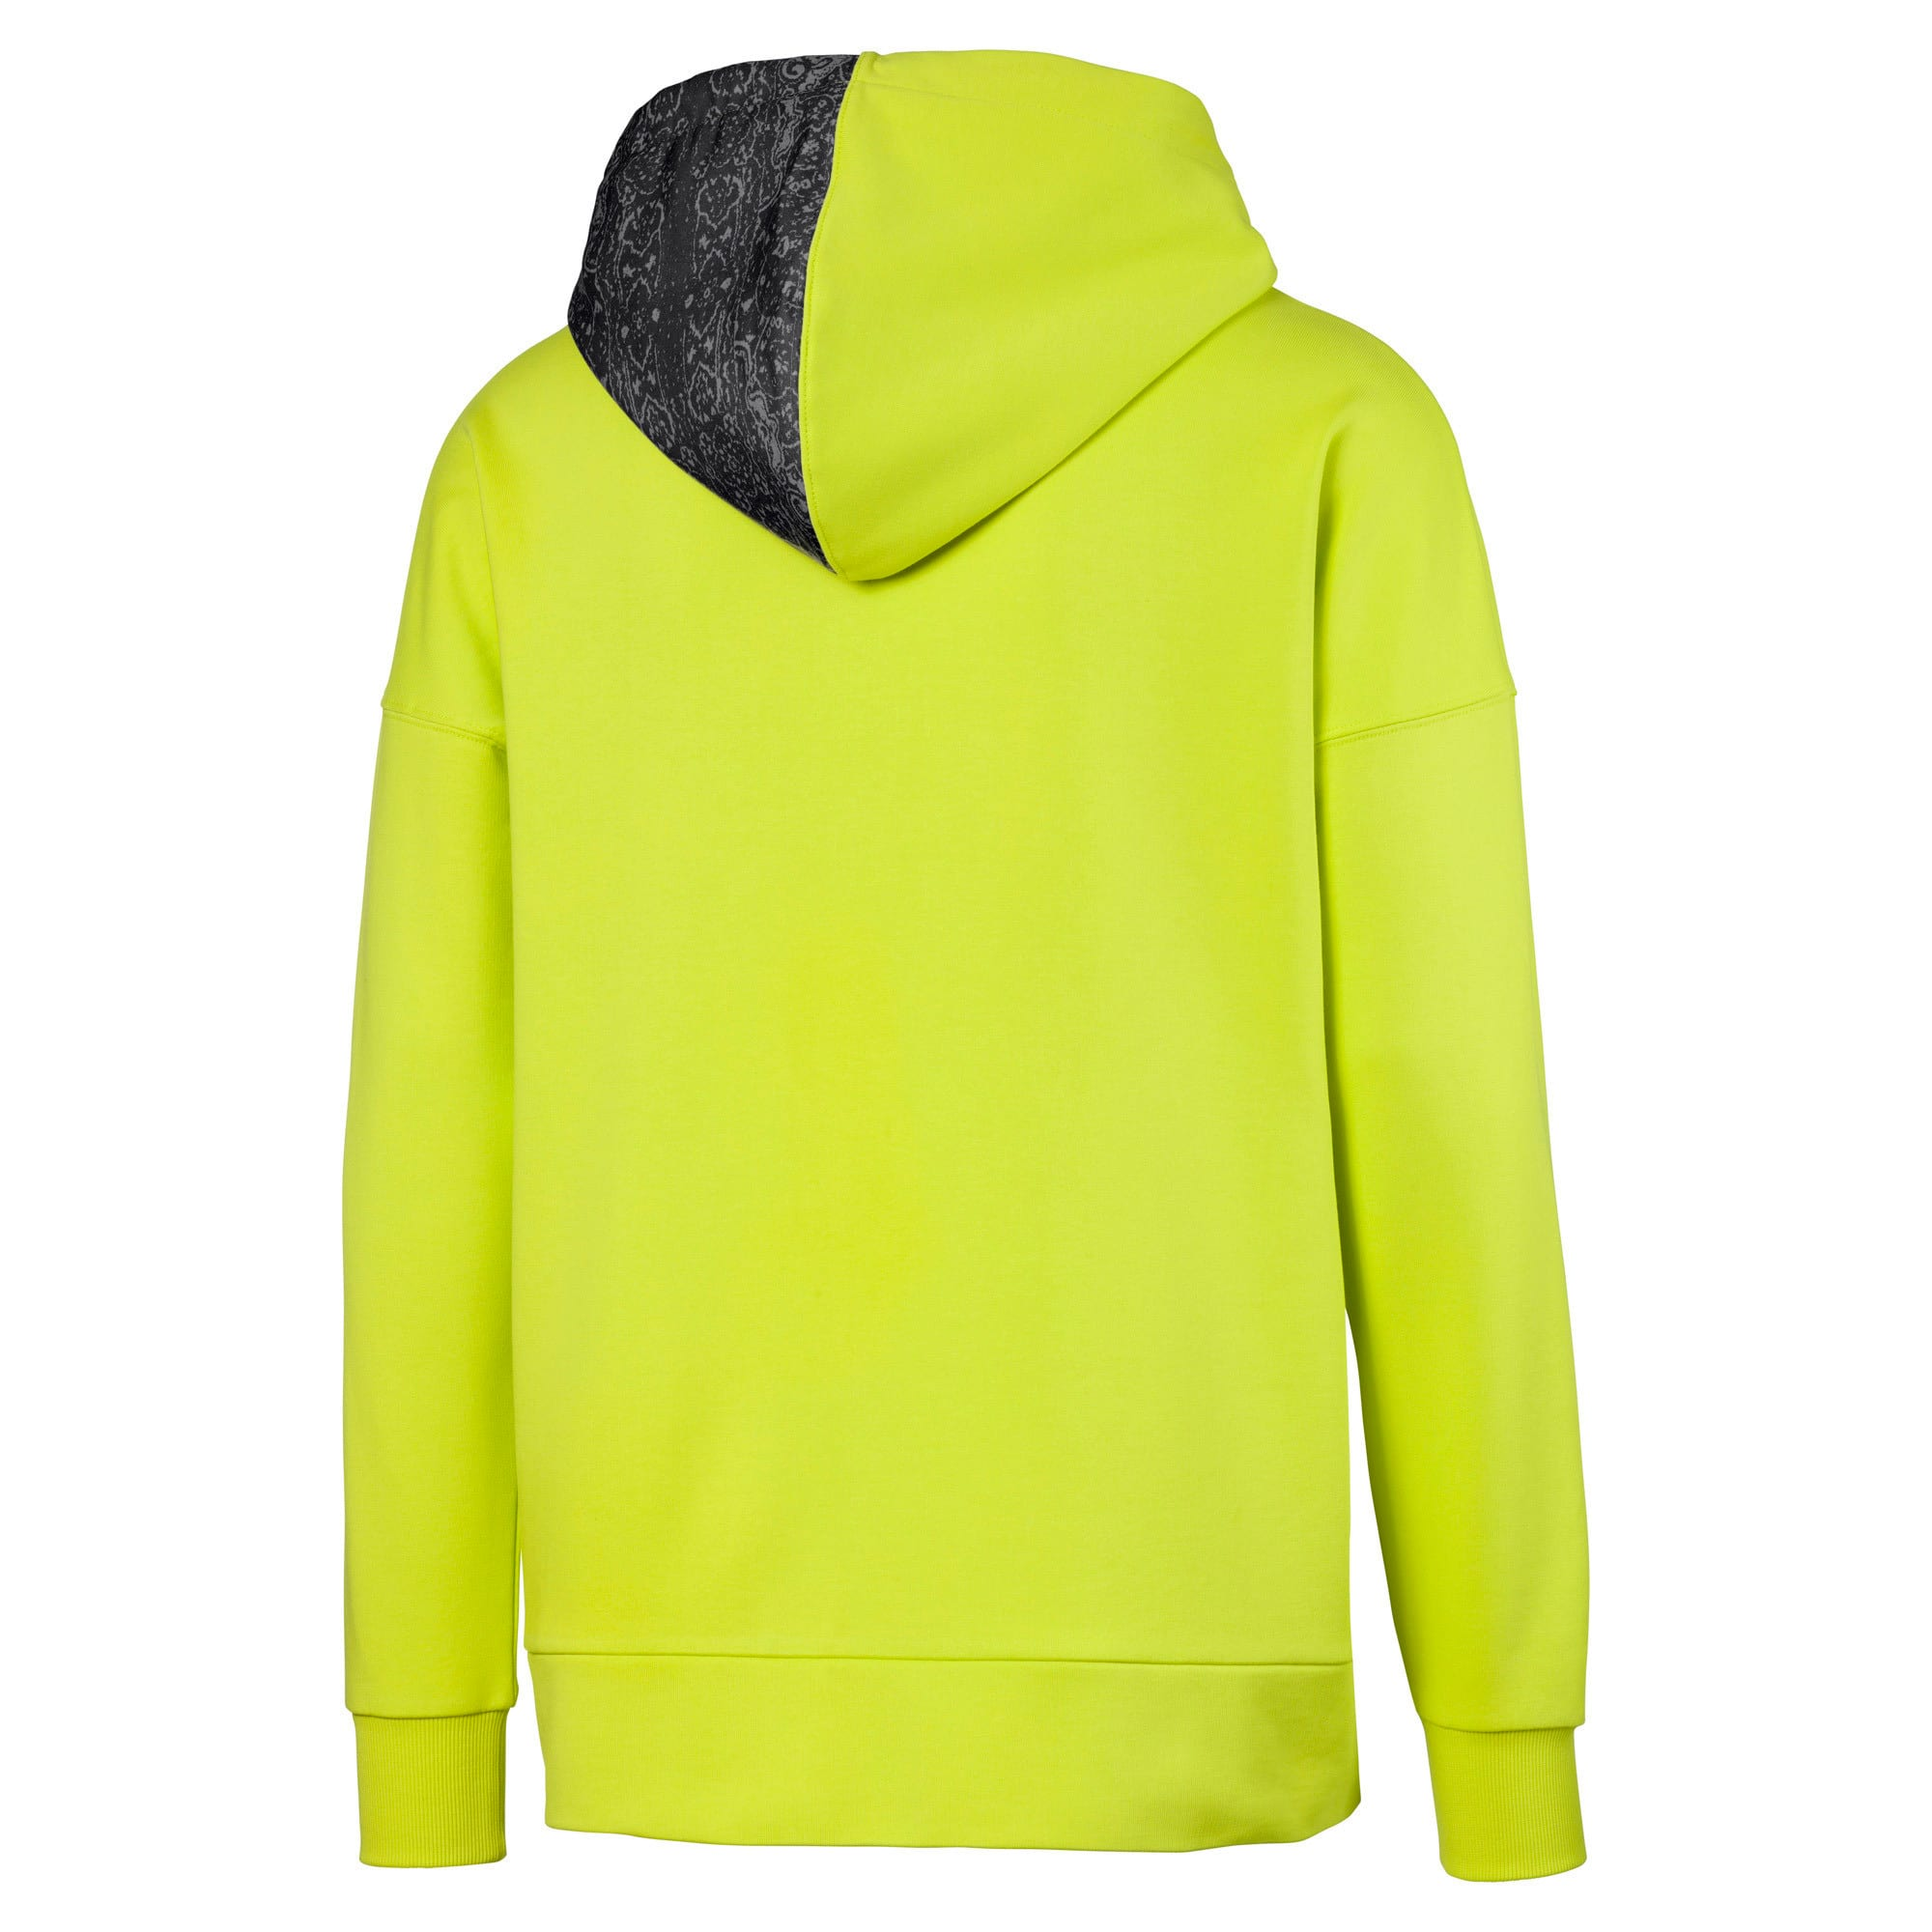 Thumbnail 5 of PUMA x LES BENJAMINS Men's Hoodie, Nrgy Yellow, medium